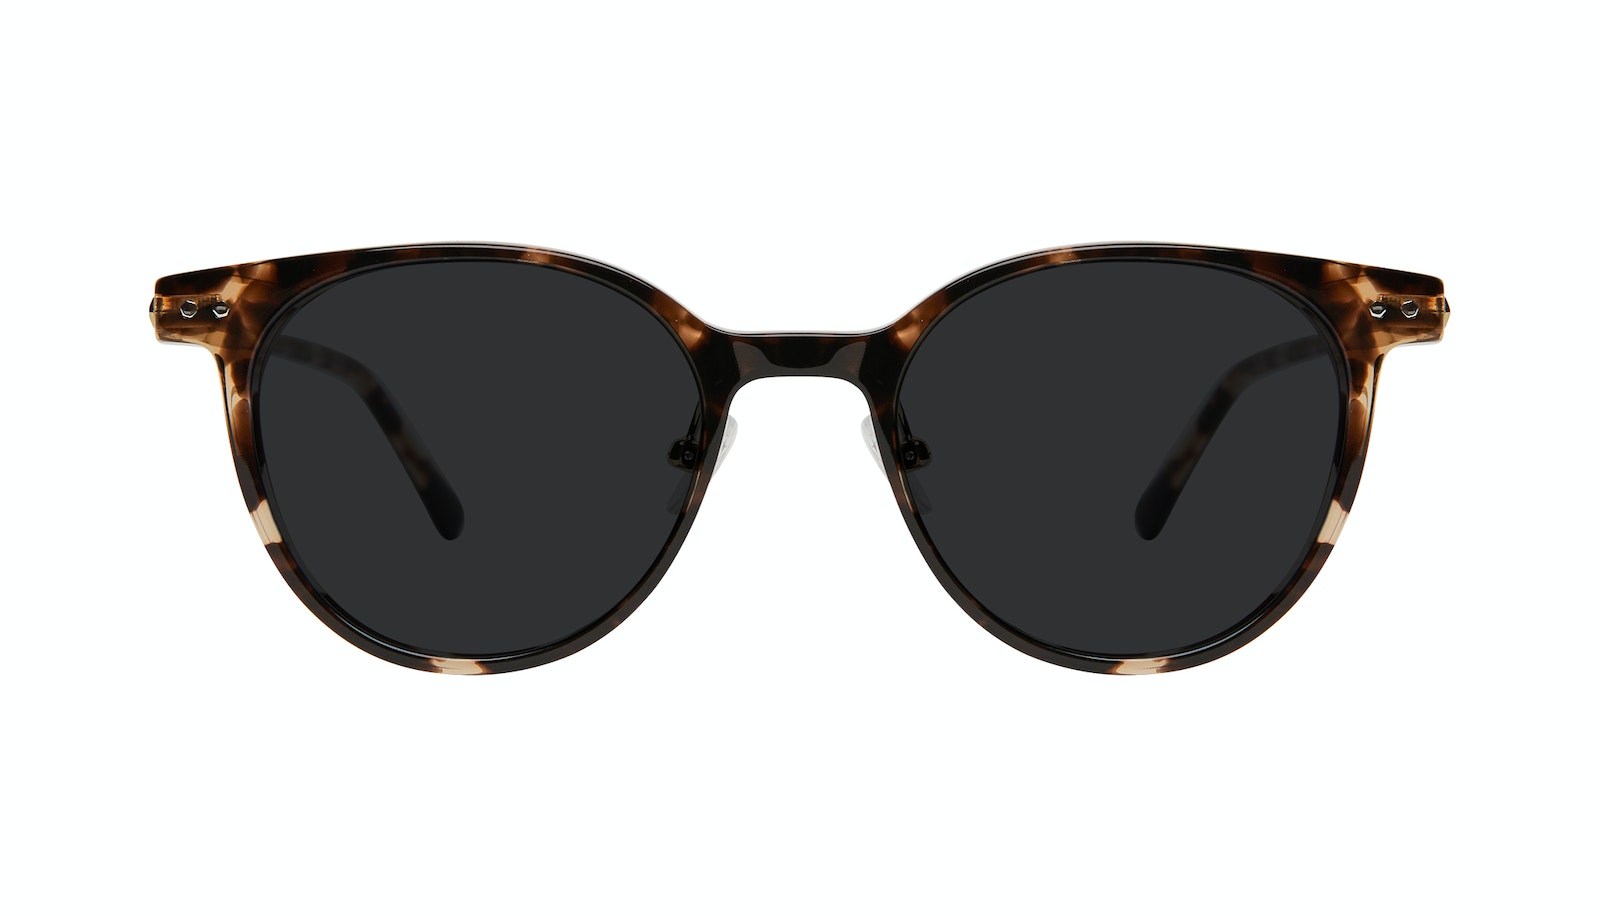 Affordable Fashion Glasses Round Sunglasses Women Lightheart Leopard